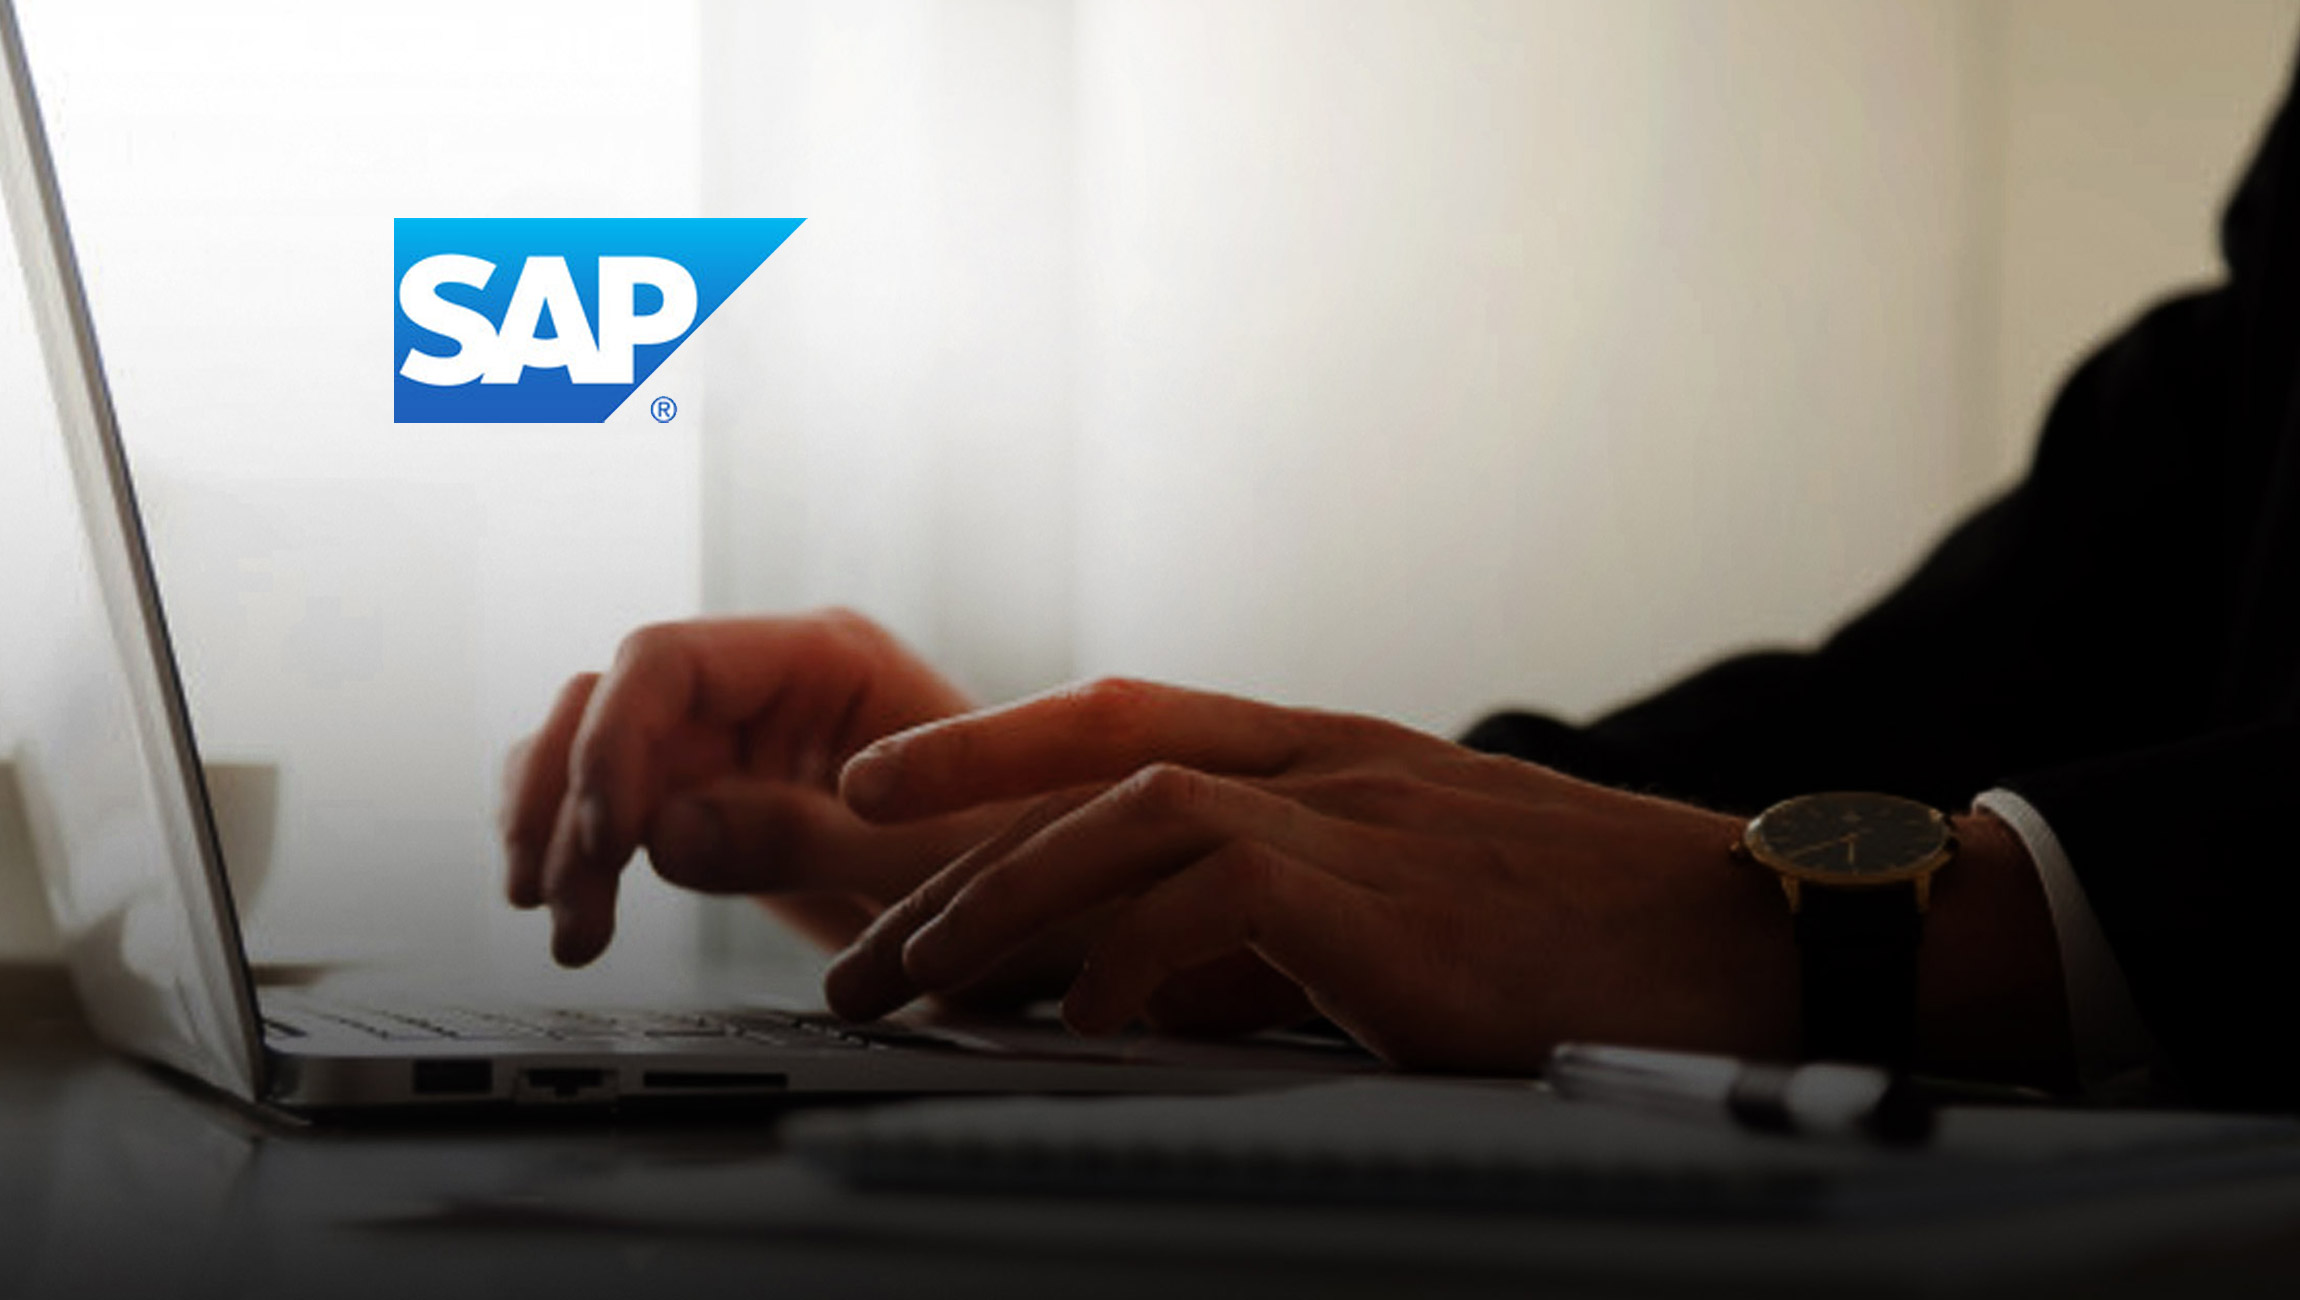 Companies Continue to Digitalize Spend Management with SAP